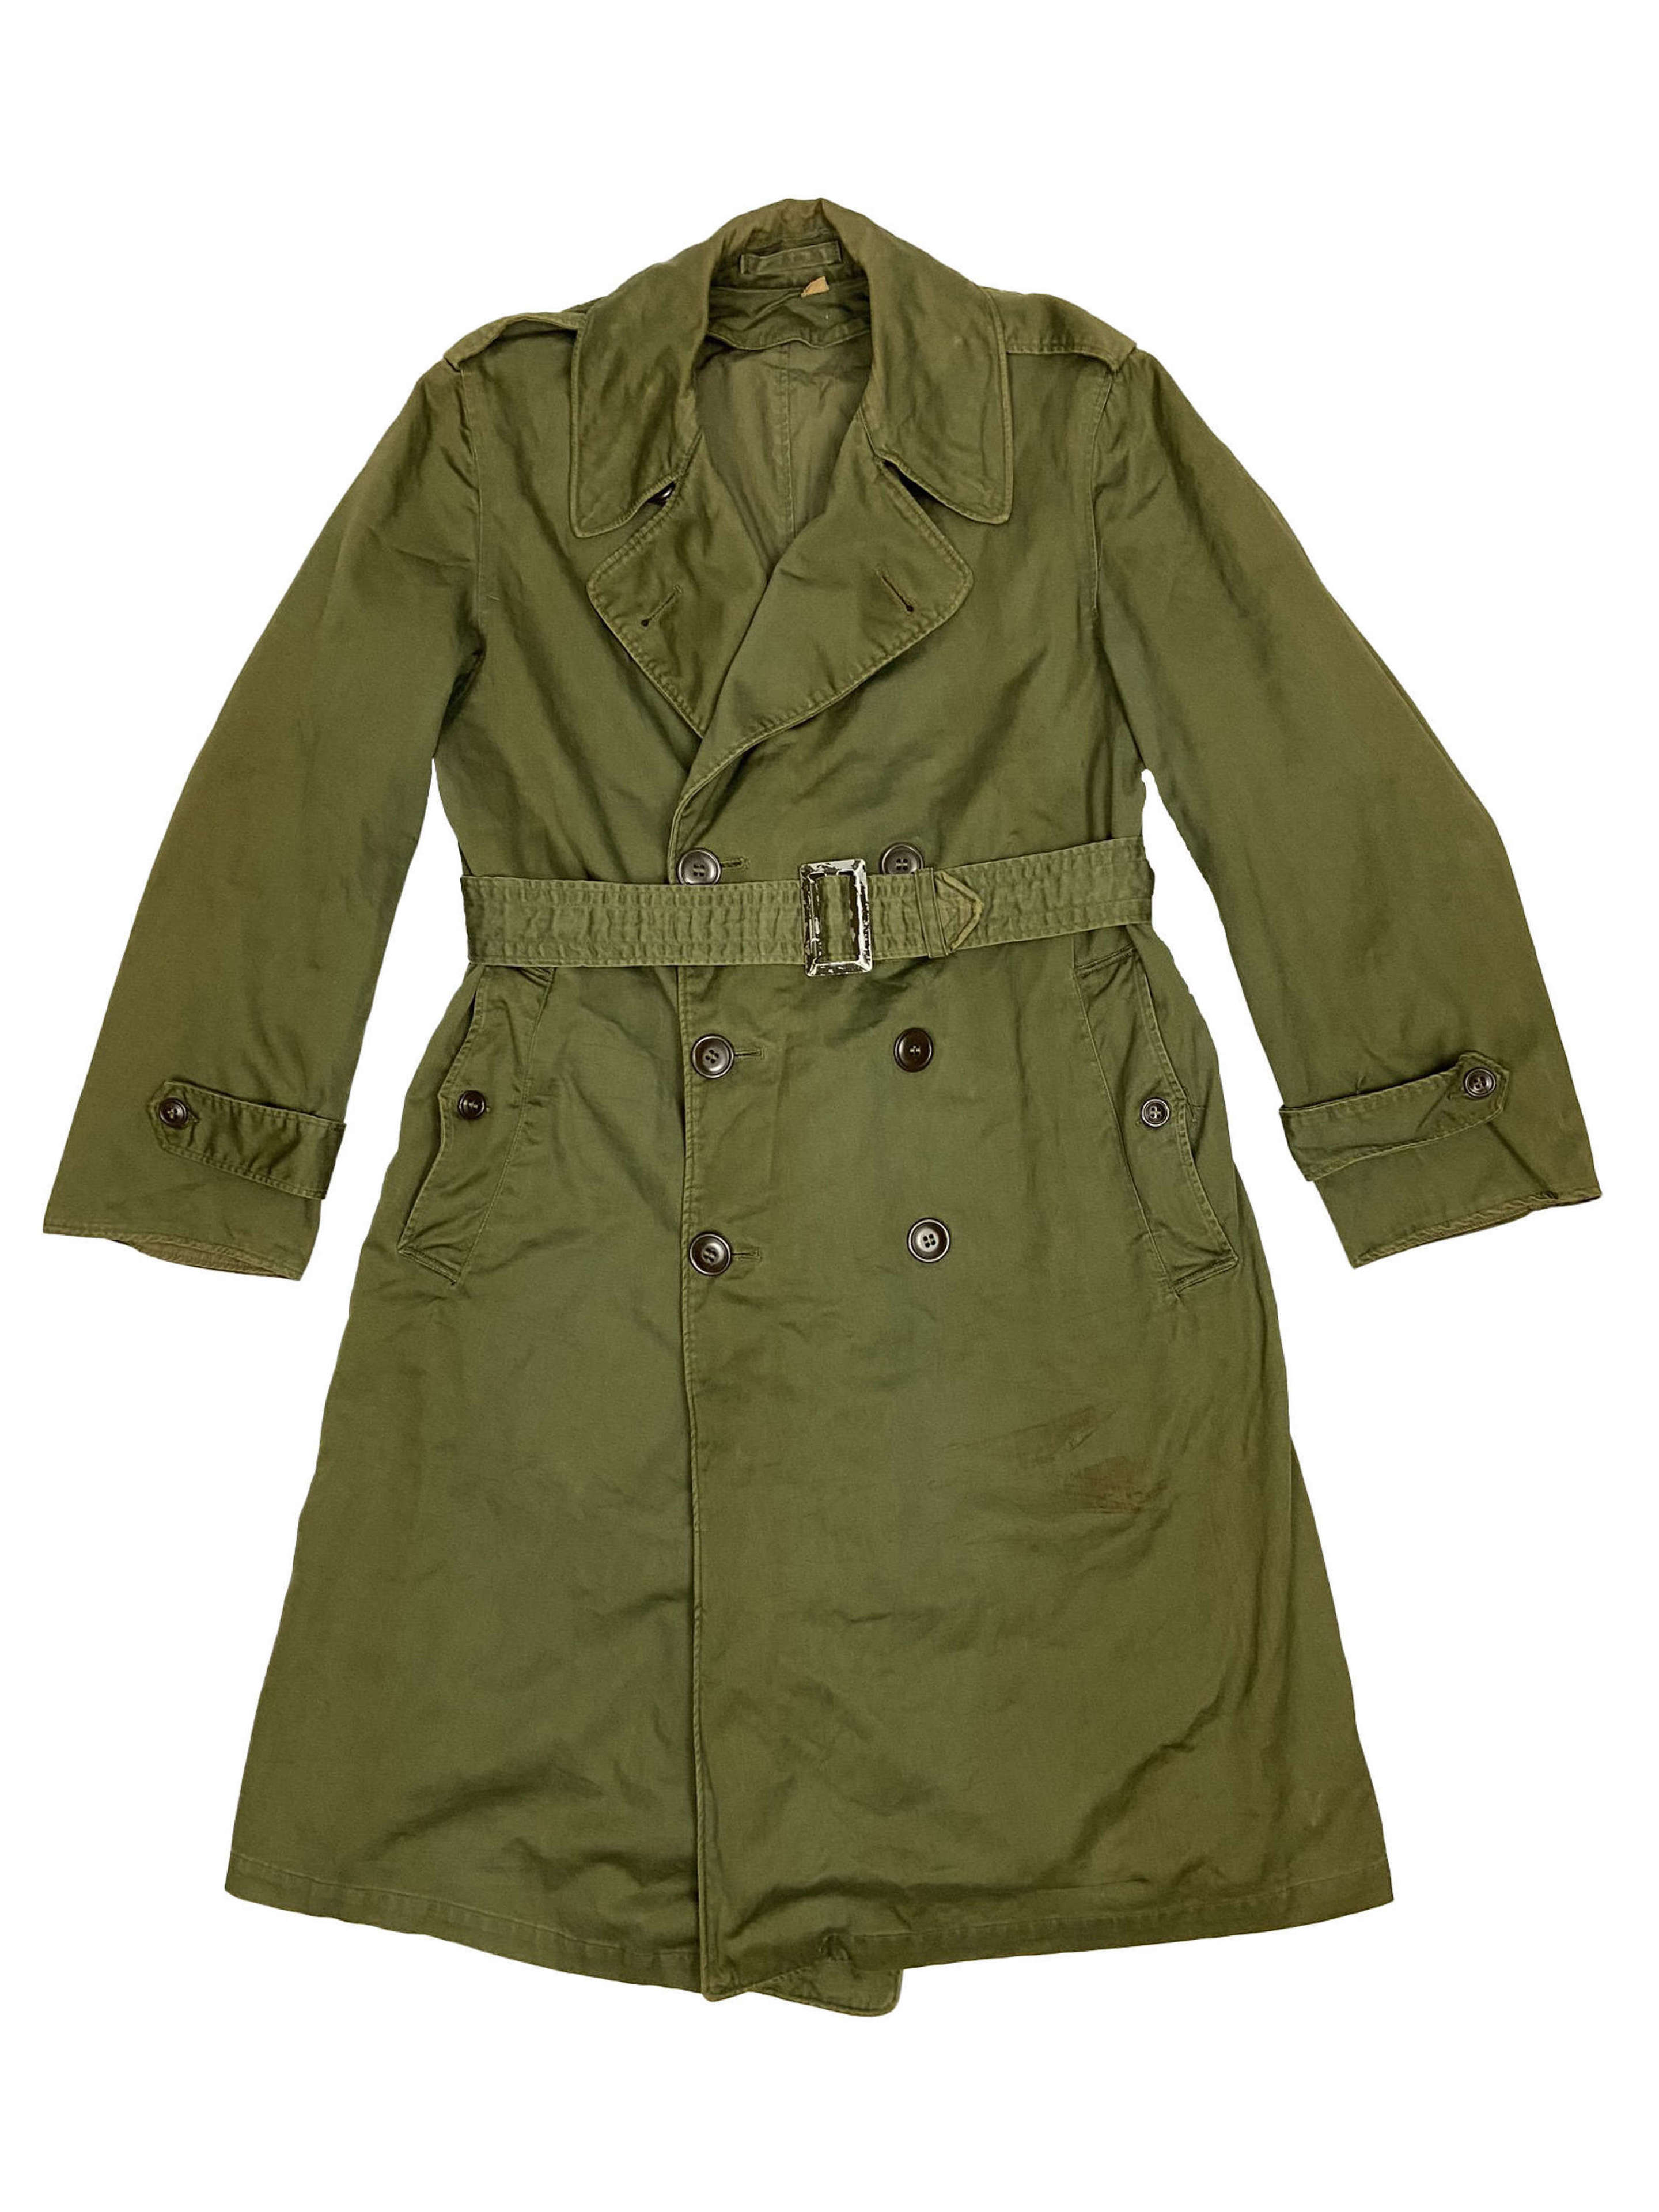 Original 1953 Dated US Army O.G. 107 Raincoat - Size Short Small